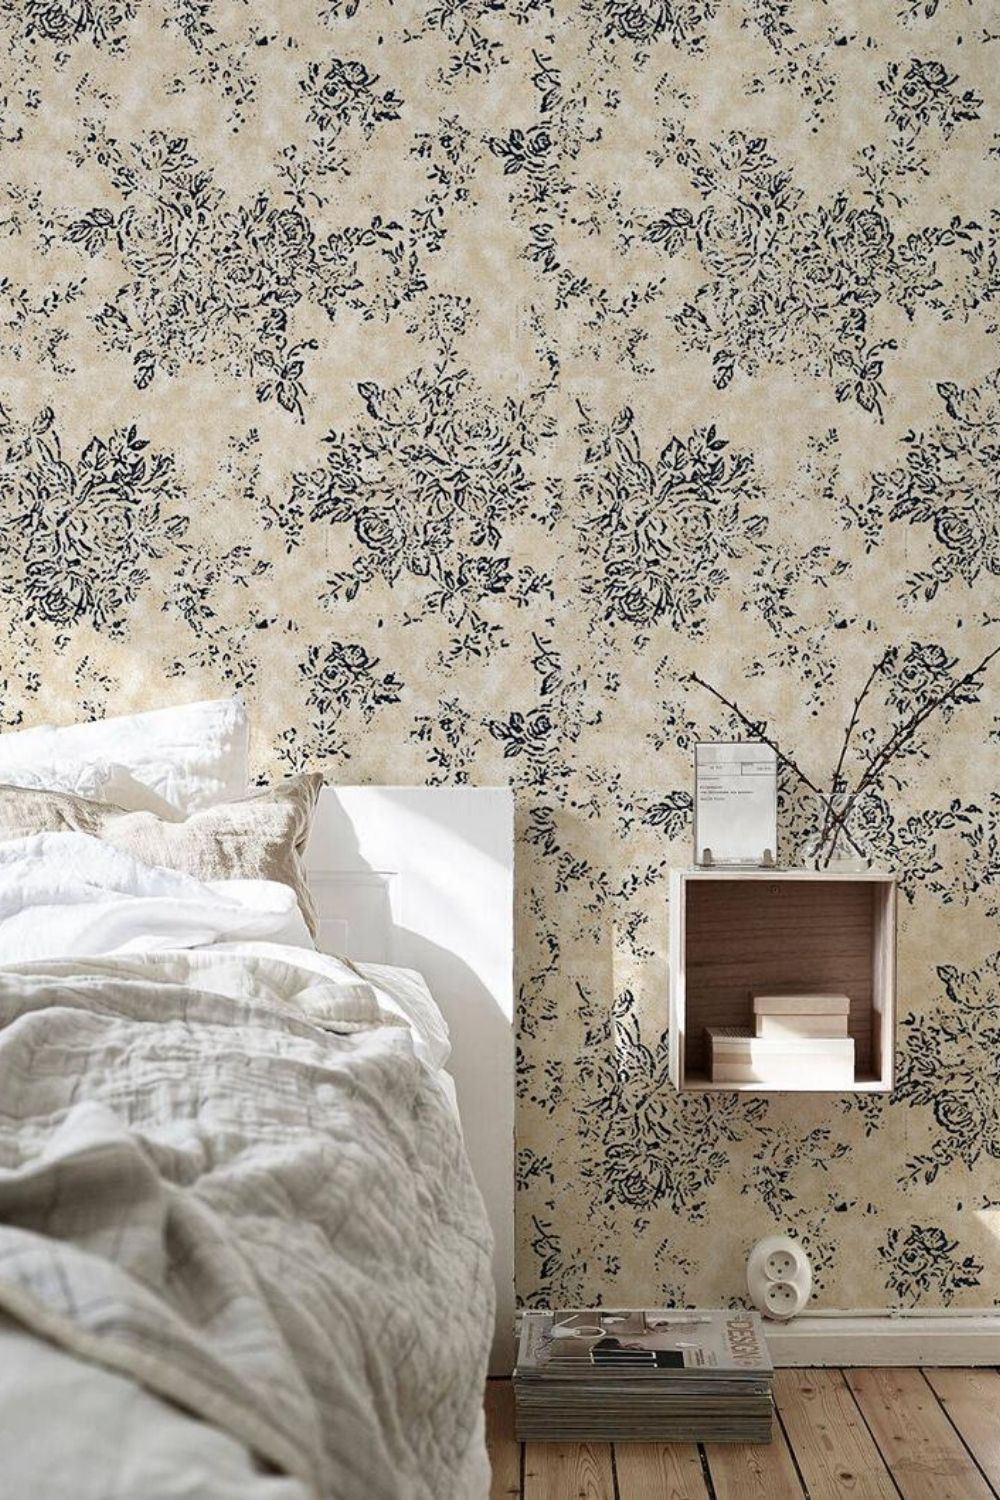 Old Style Floral Wallpaper Removable Wallpaper Black And Beige Etsy How To Install Wallpaper Removable Wallpaper Bedroom Decor